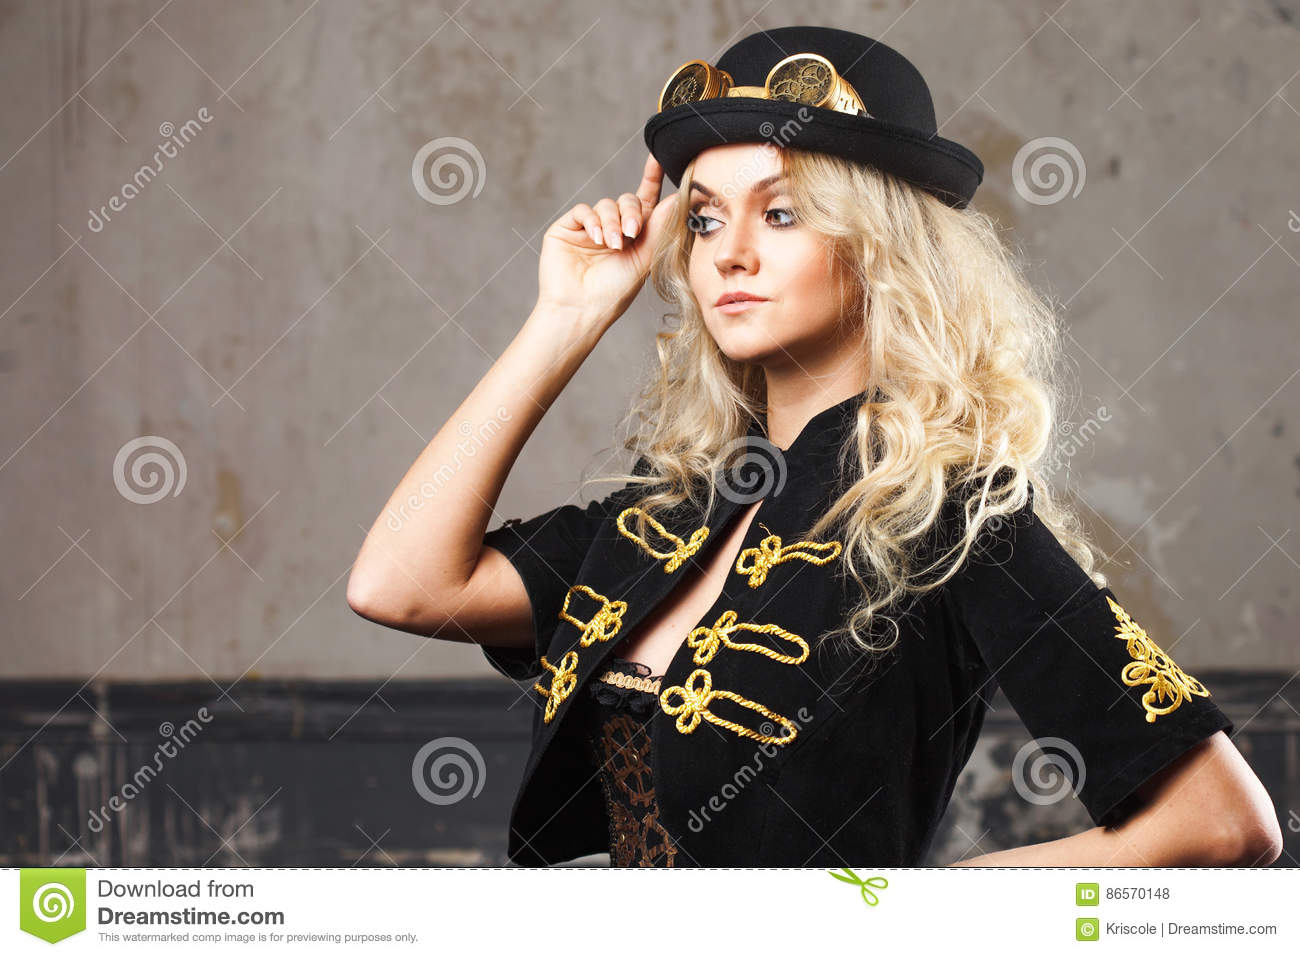 717c6564123 Portrait of a beautiful steampunk woman hat-bowler hat over grunge  background.